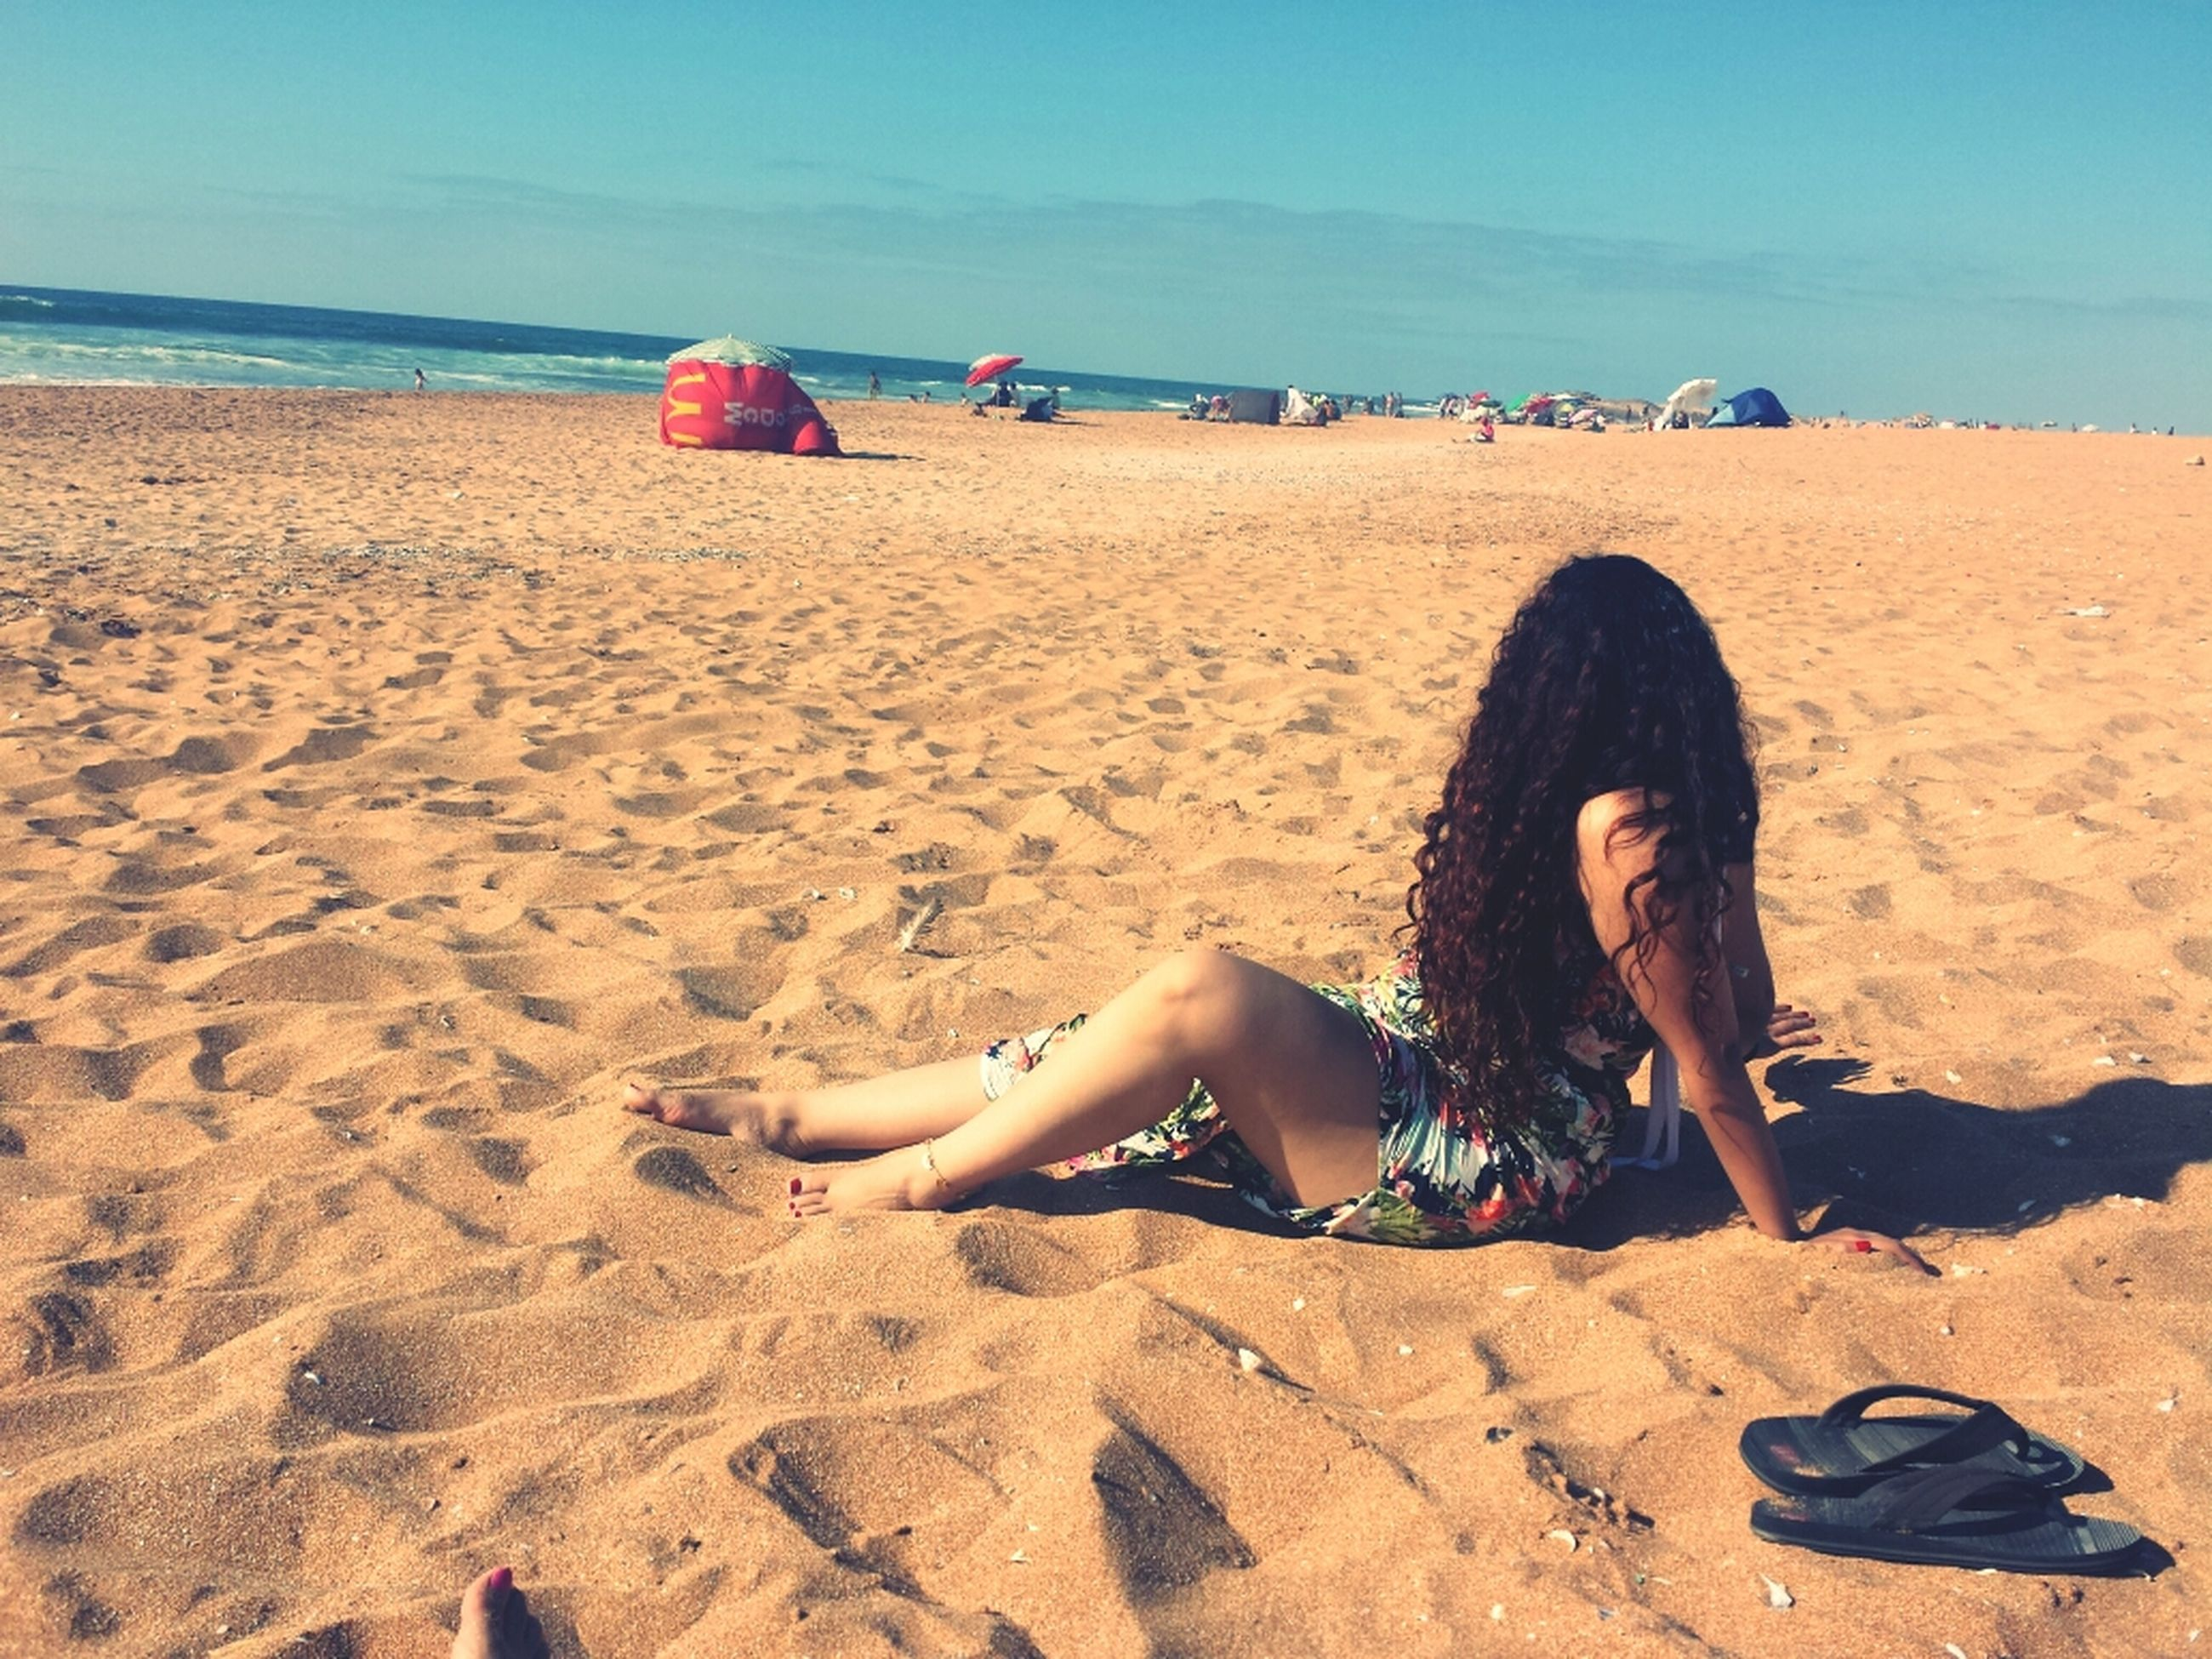 beach, sand, shore, sea, leisure activity, lifestyles, full length, childhood, vacations, relaxation, horizon over water, water, summer, enjoyment, sunlight, girls, casual clothing, sitting